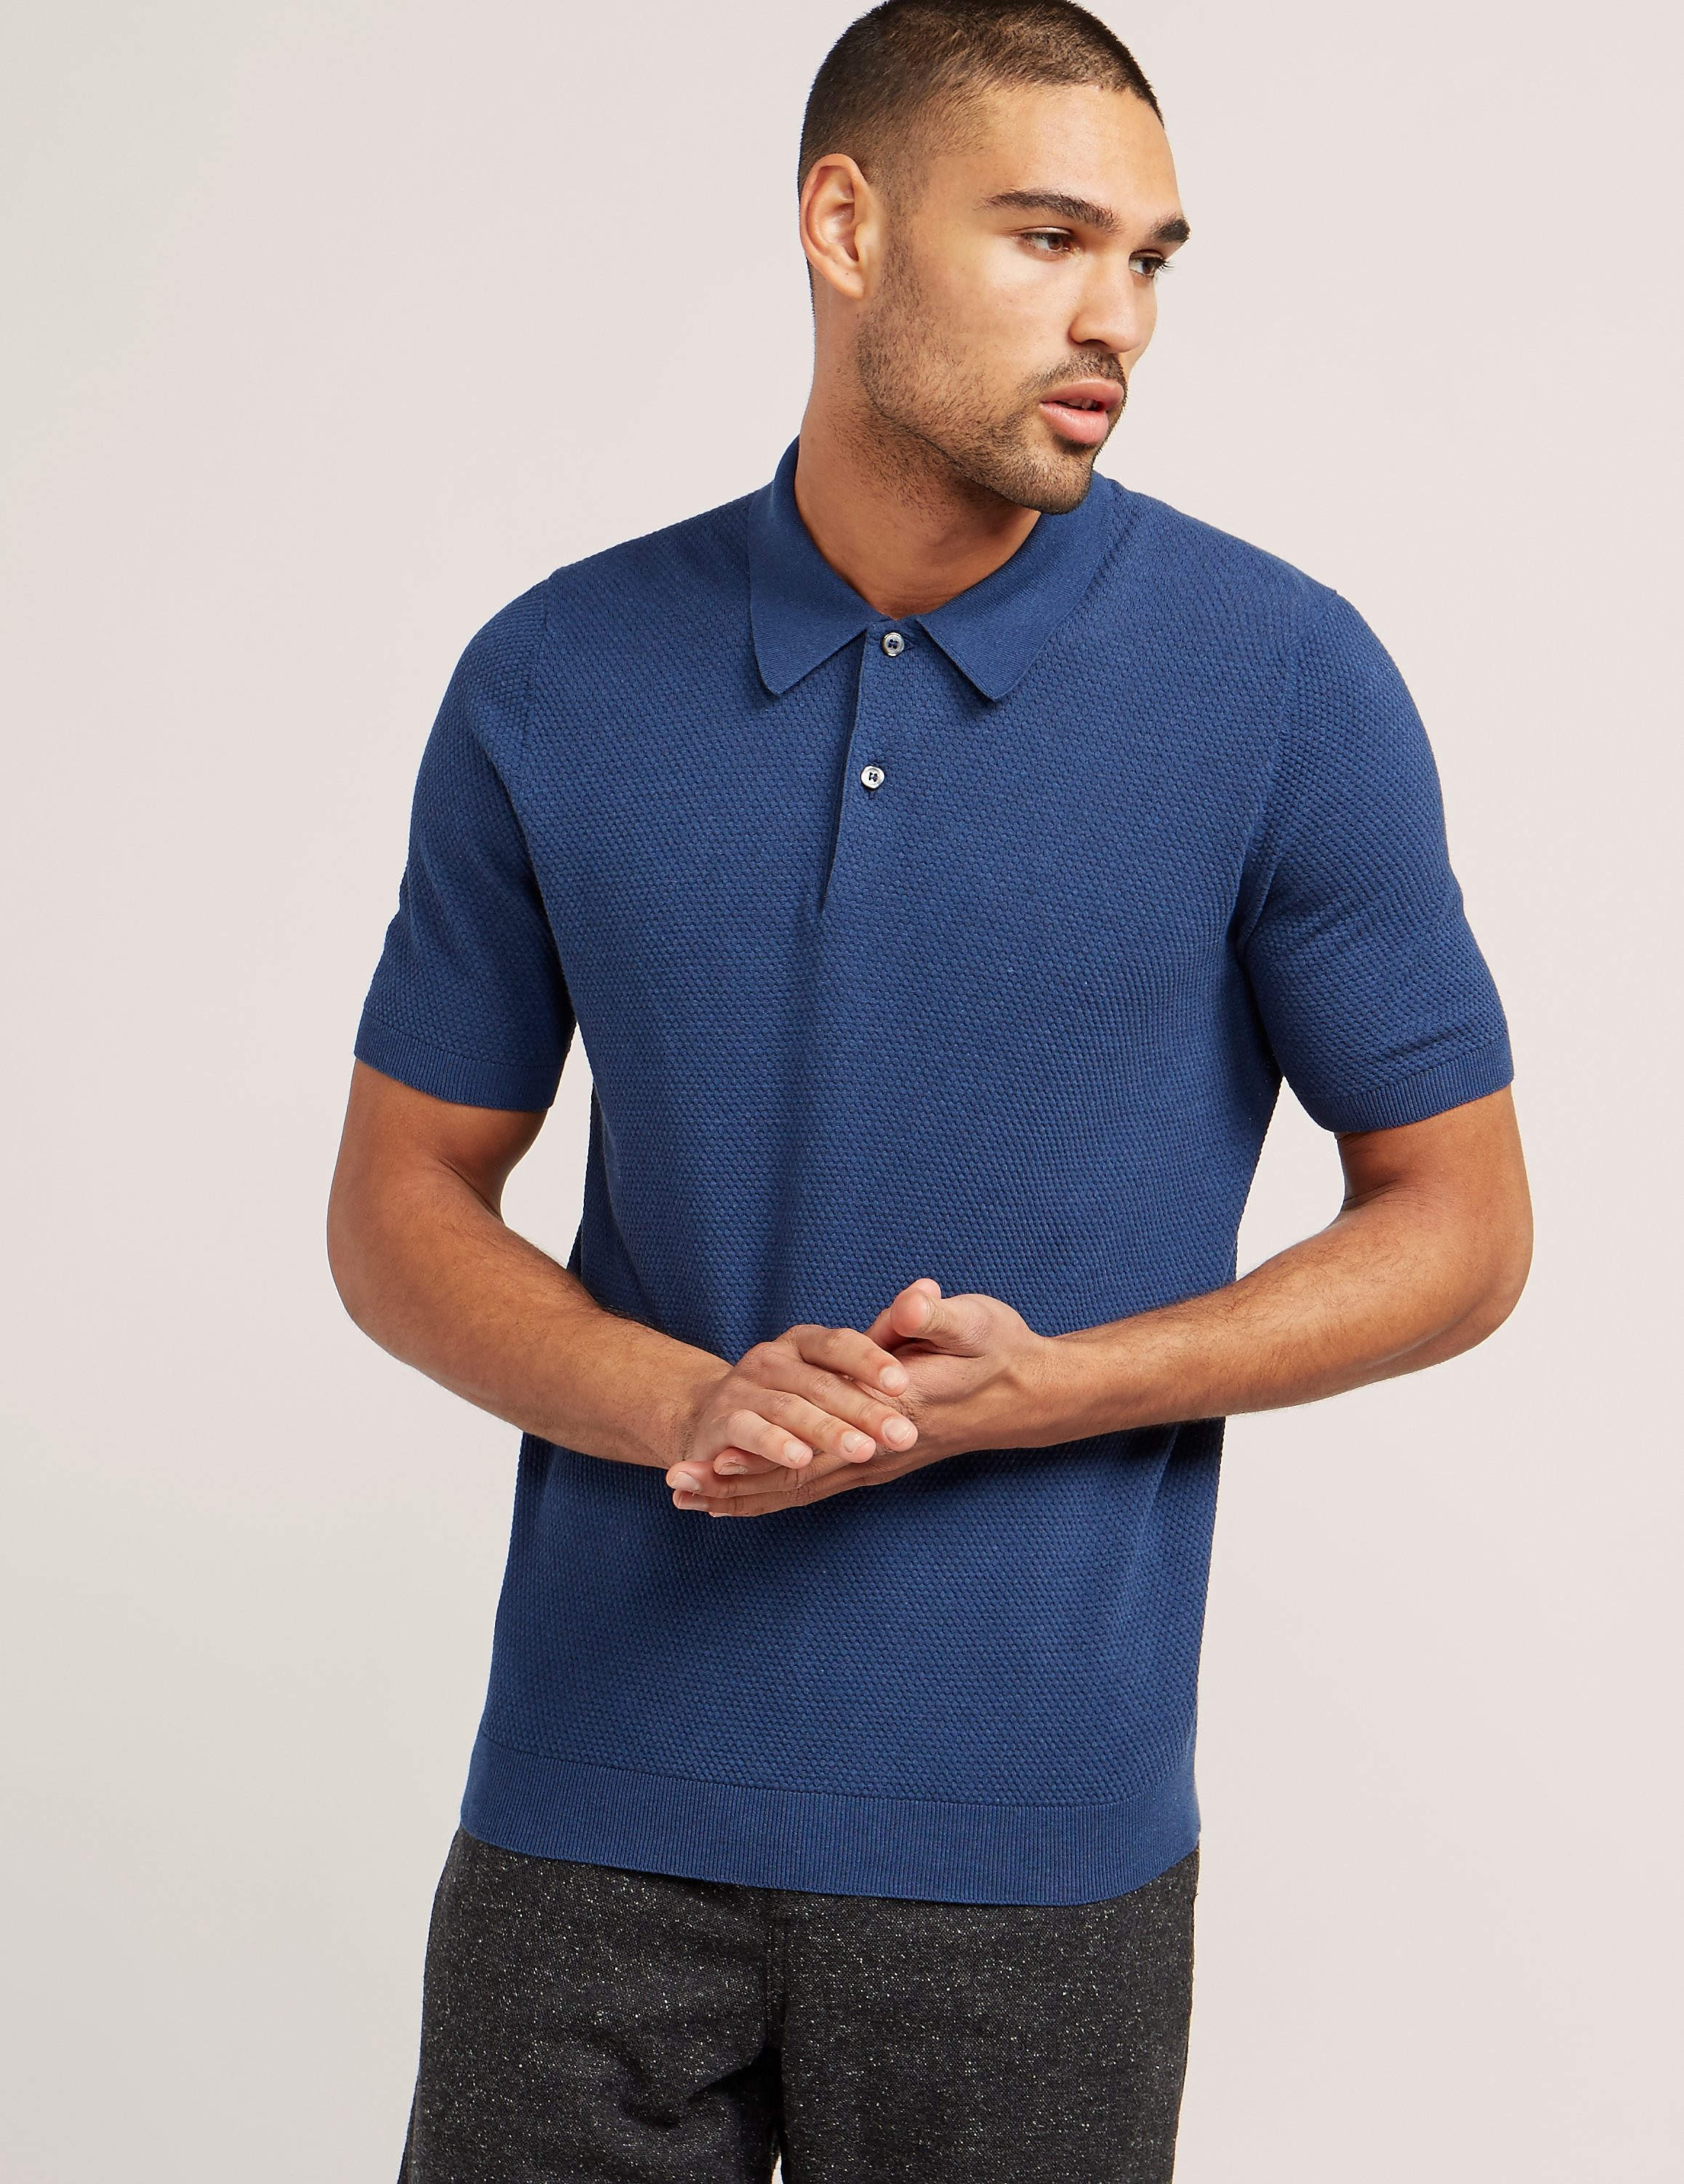 Gran Sasso Textured Short Sleeve Polo Shirt